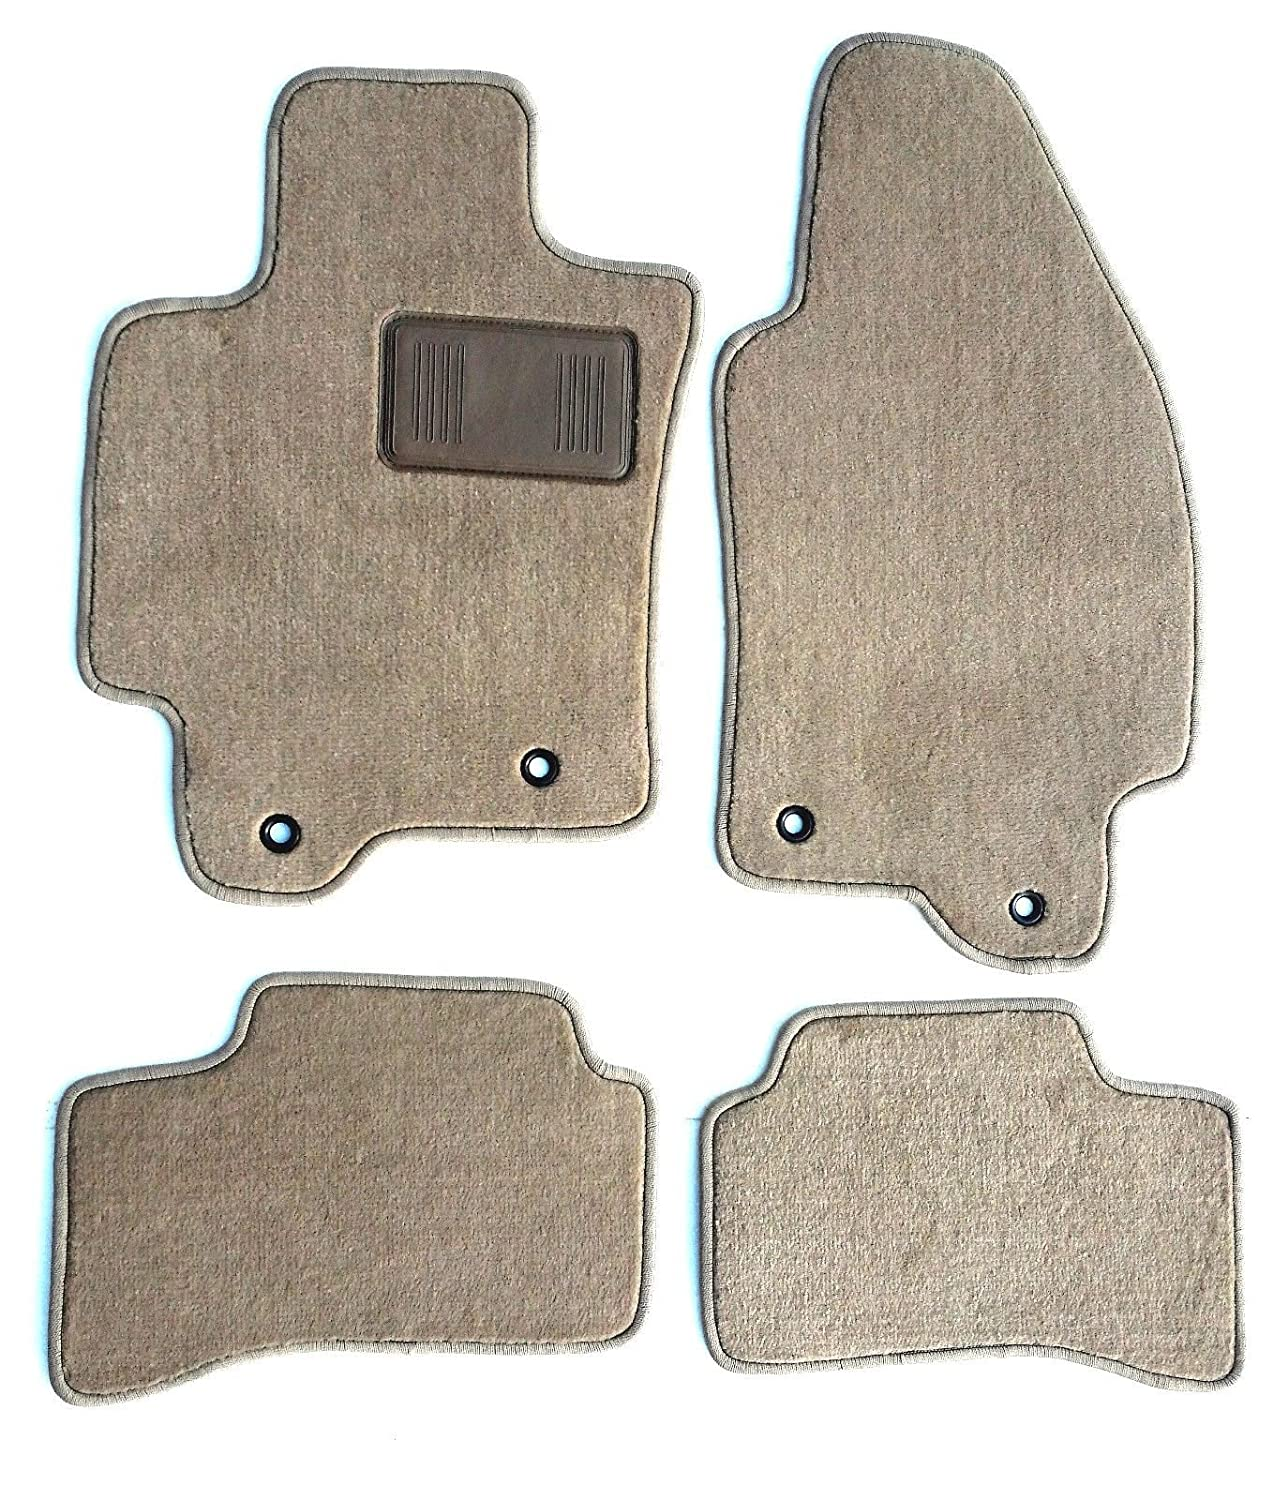 Jaguar X-Type Custom Fit Beige Carpet Replacement Floor Mats 4PC for 2004.5-2009-Serged Edges & Heel Pad